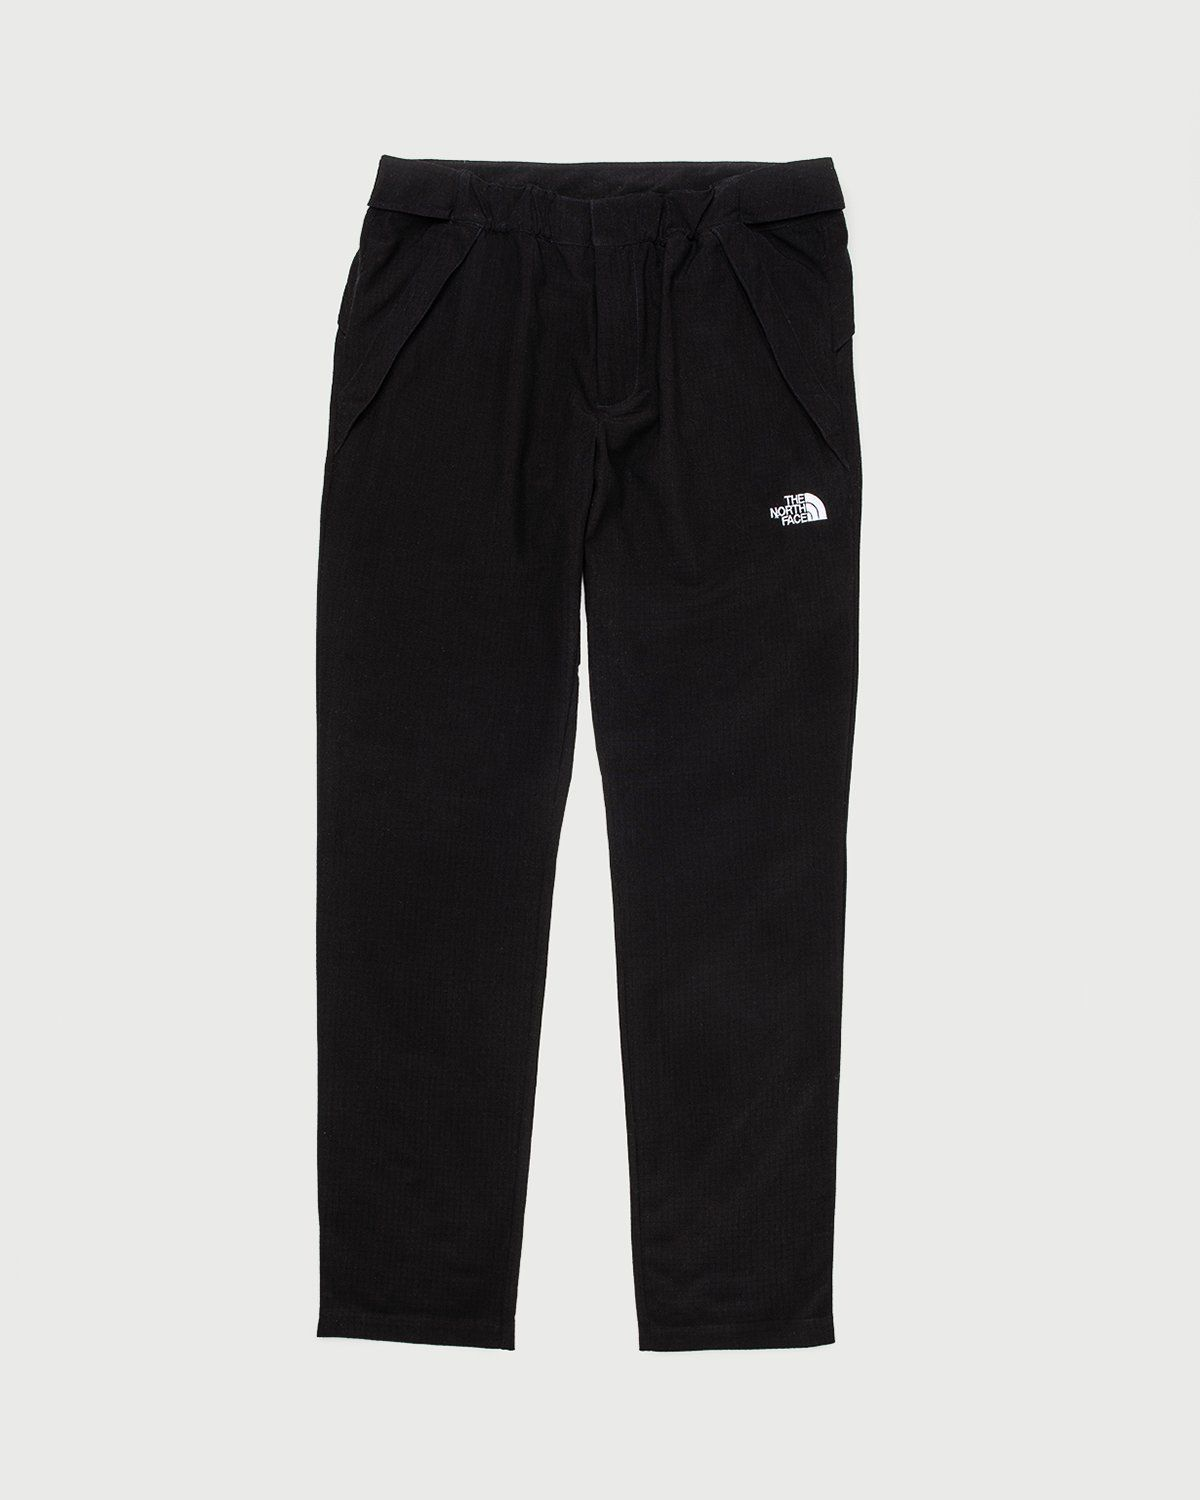 The North Face Black Series - Ripstop Trousers Black - Image 1